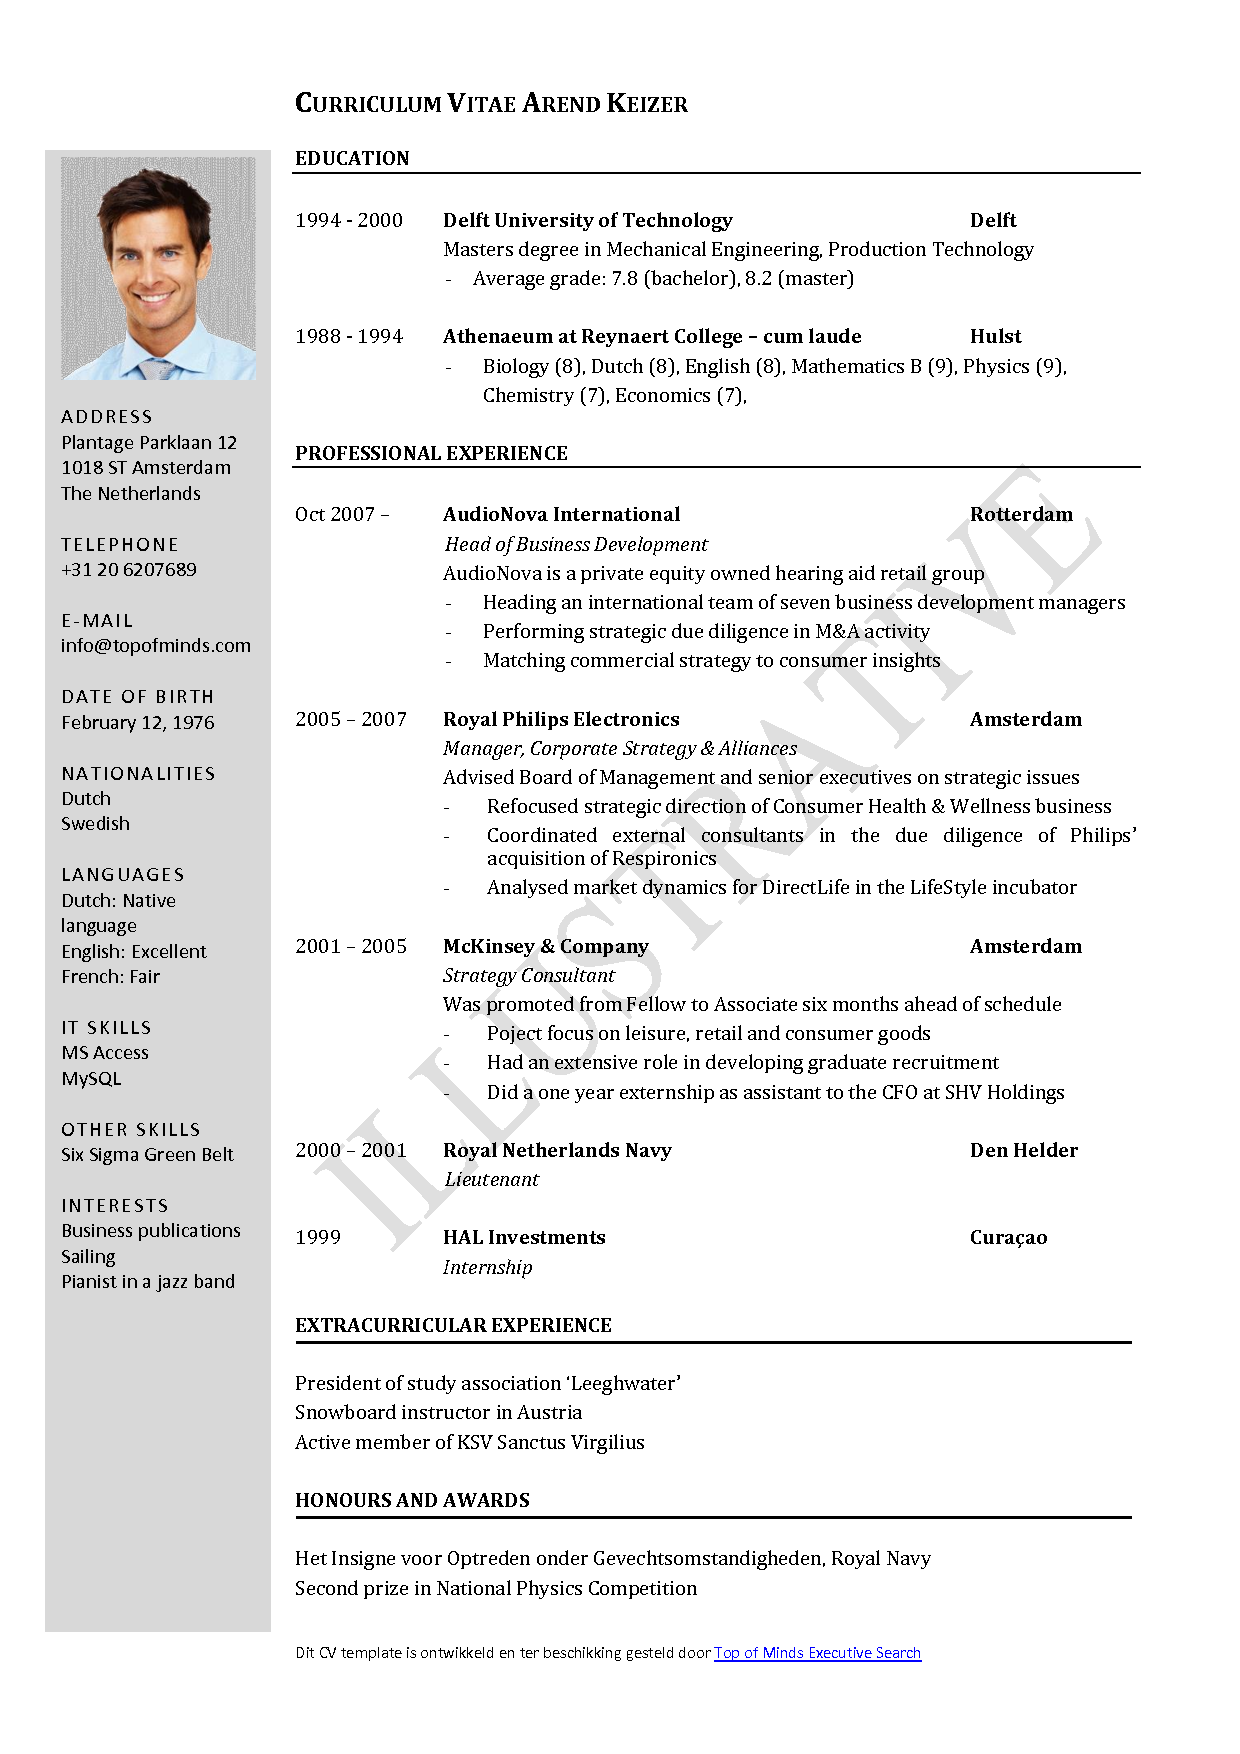 Curriculum Vitae Template For Word Kubreforic